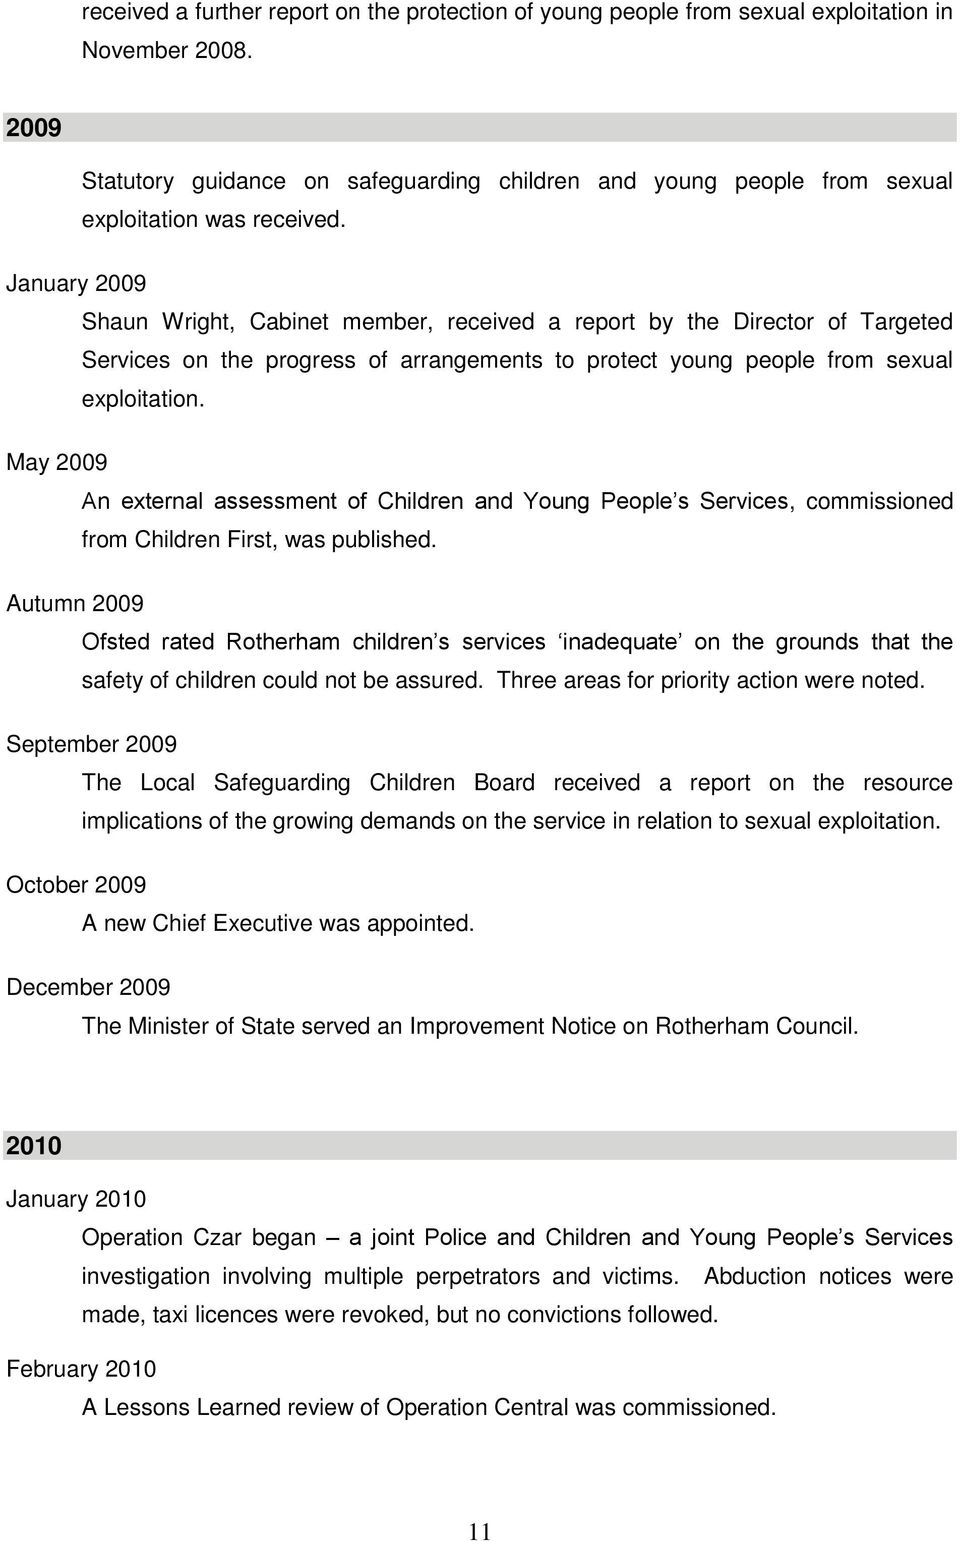 January 2009 Shaun Wright, Cabinet member, received a report by the Director of Targeted Services on the progress of arrangements to protect young people from sexual exploitation.